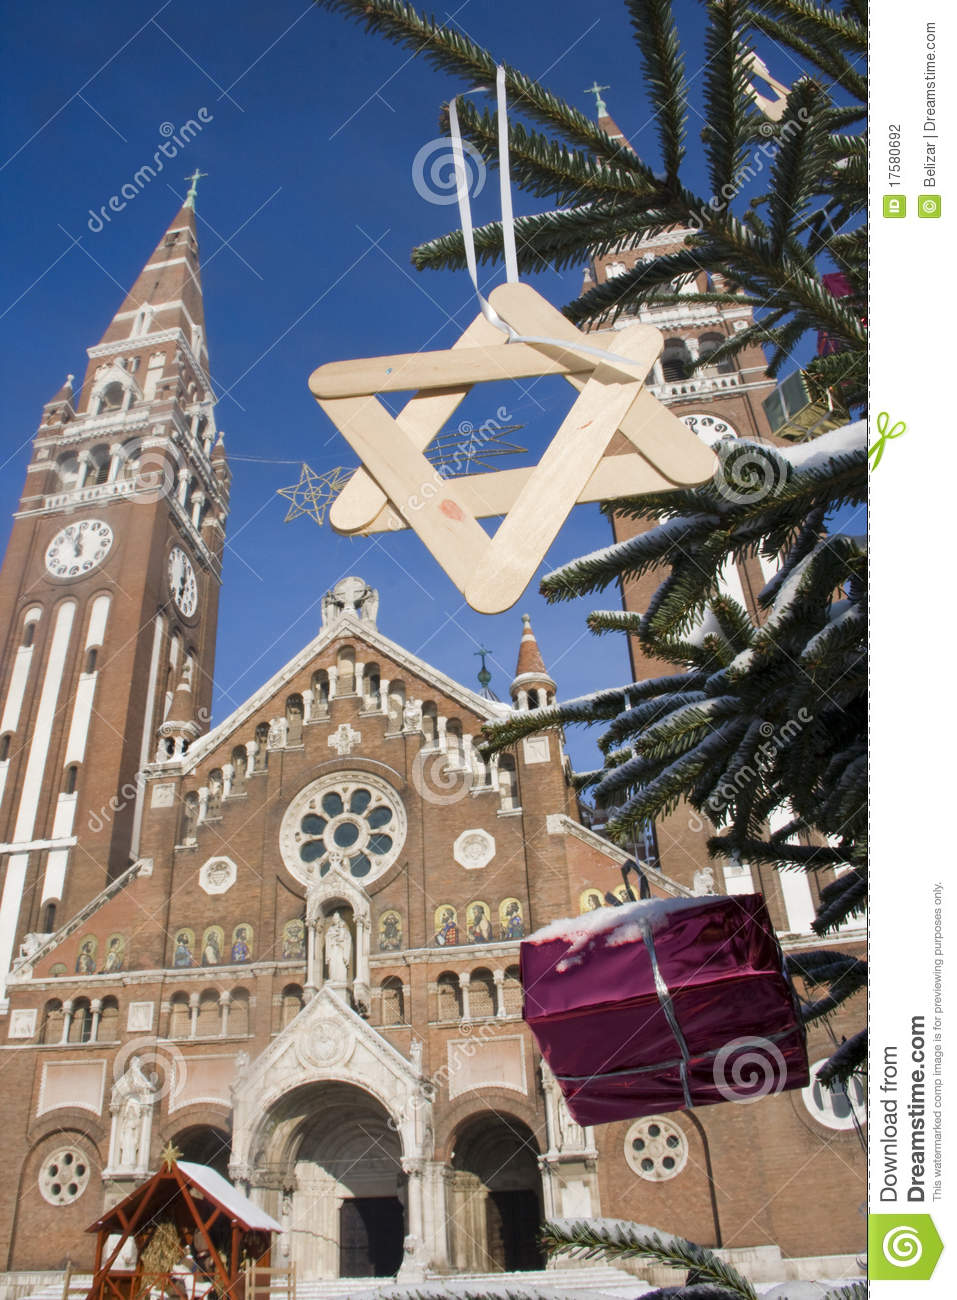 Advent in Szeged, Hungary